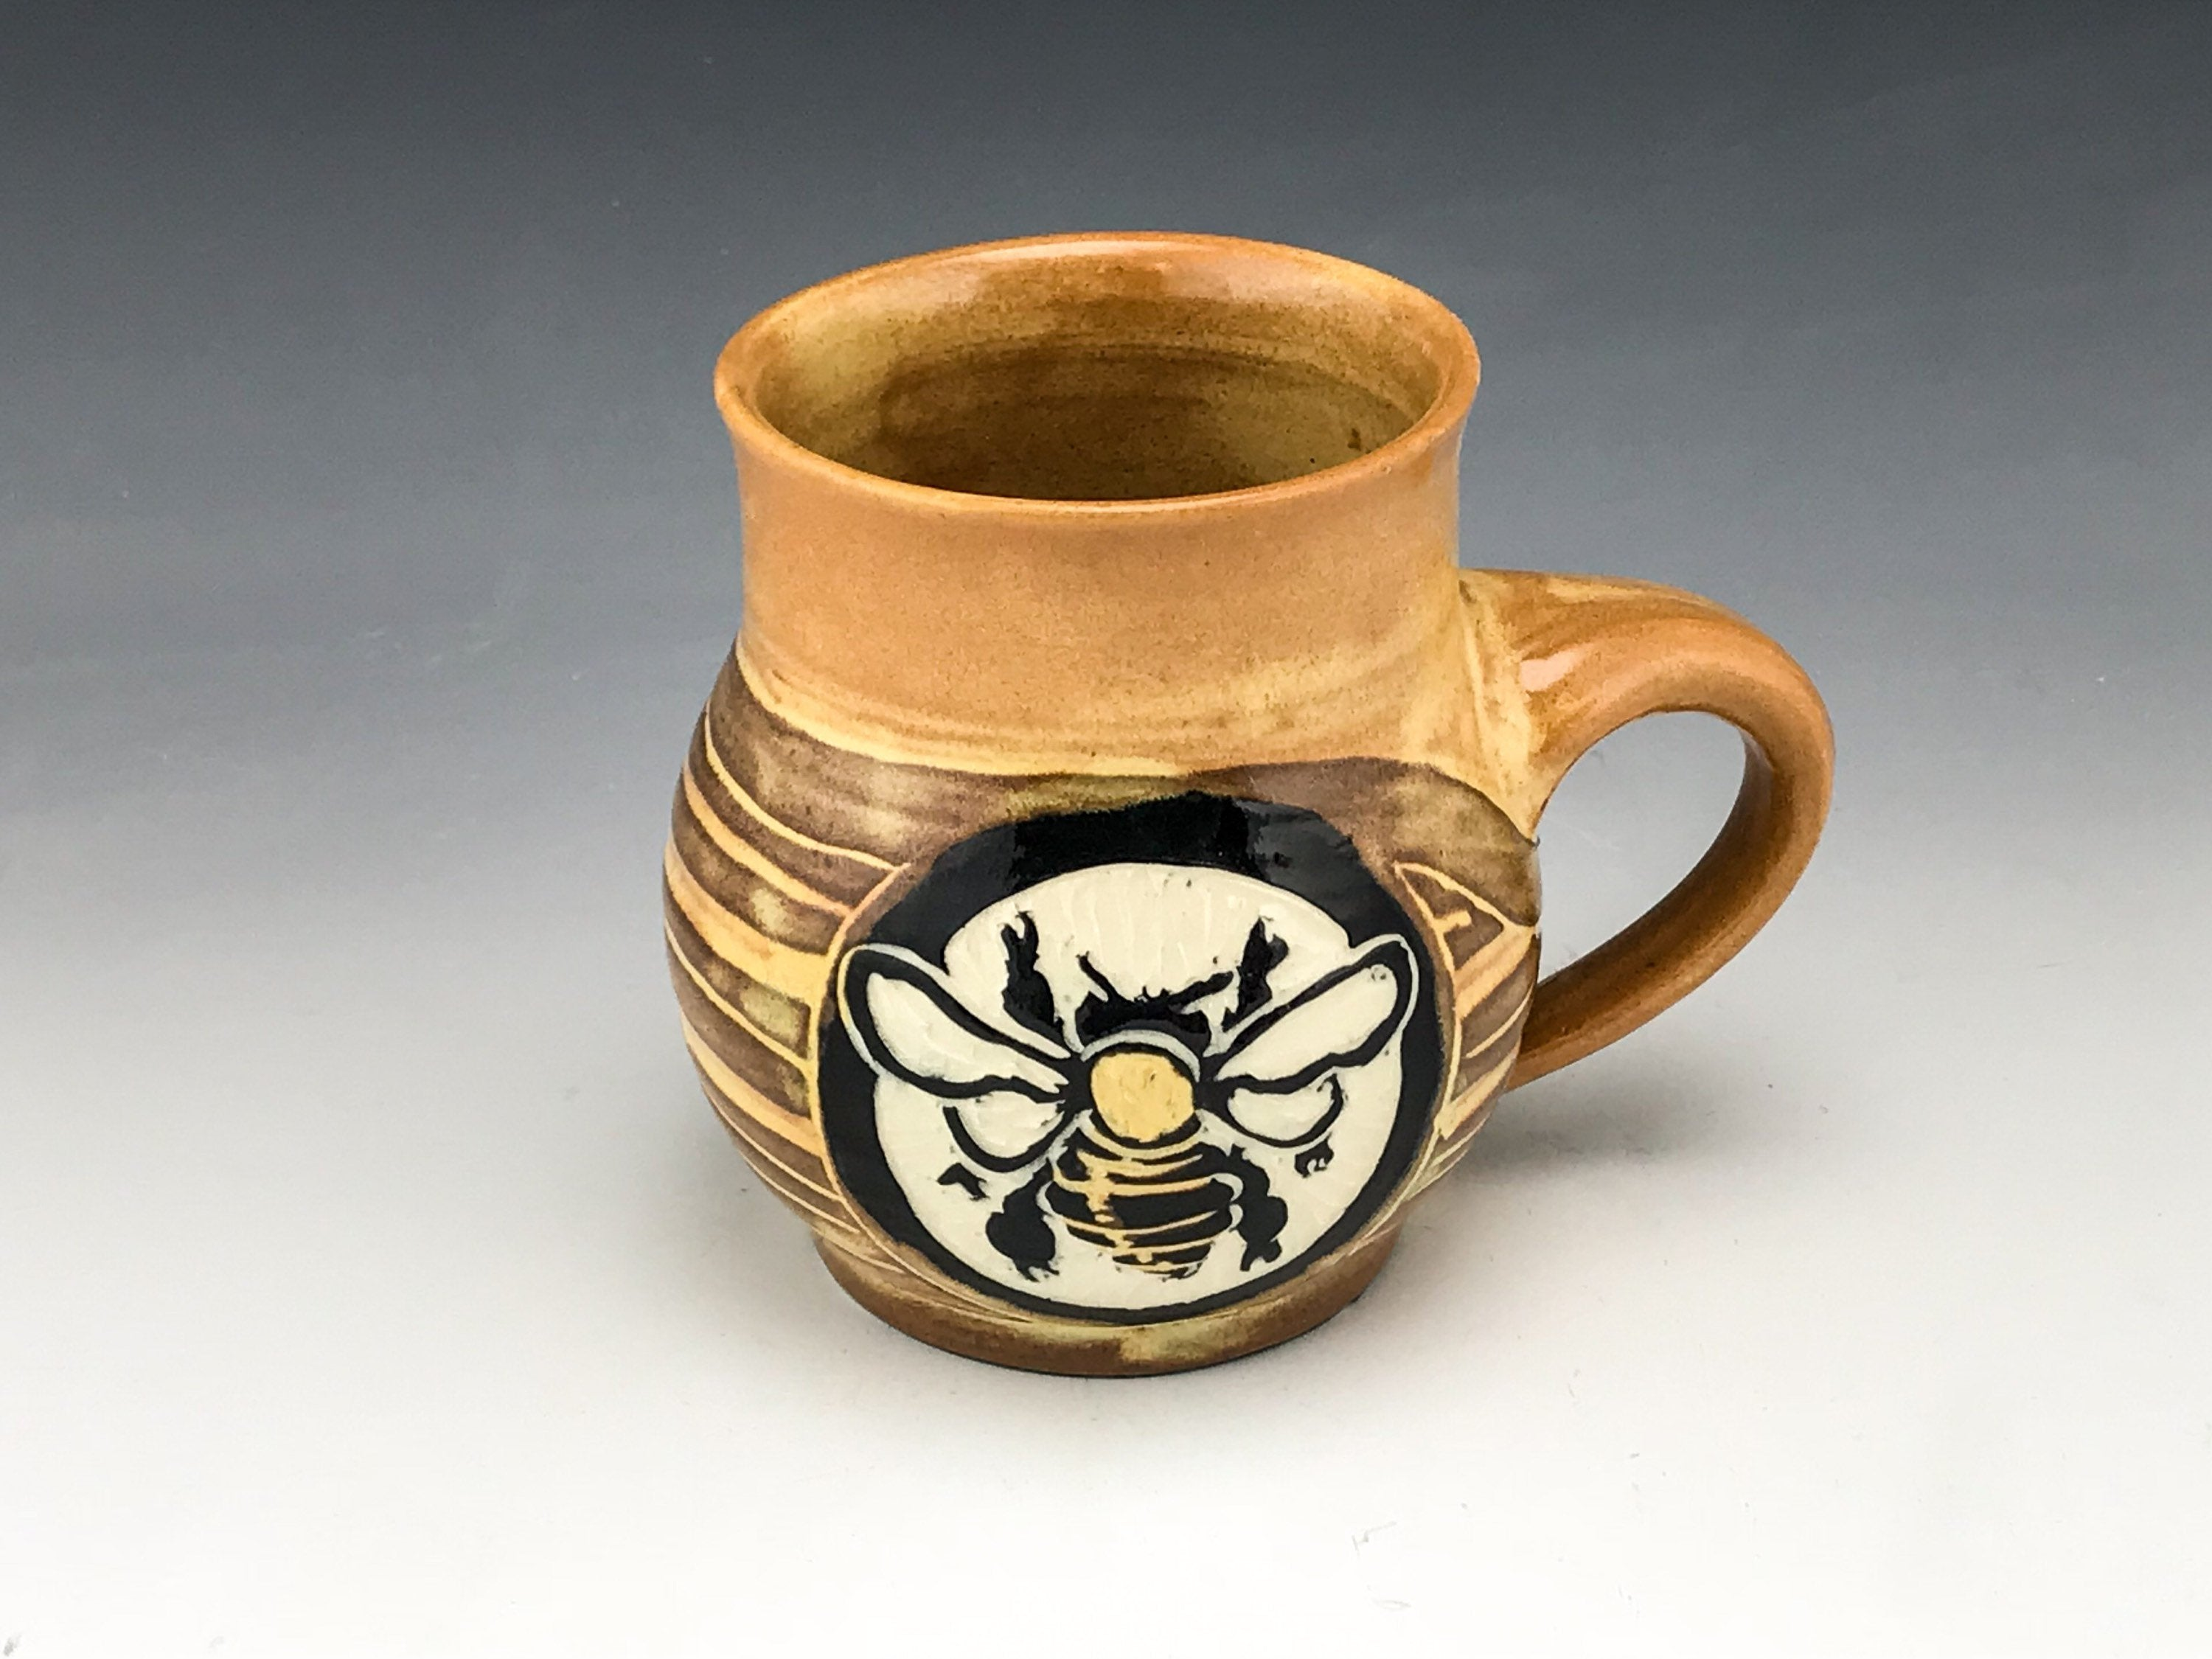 Sgraffito Handmade Pottery Bee Mug in Gold